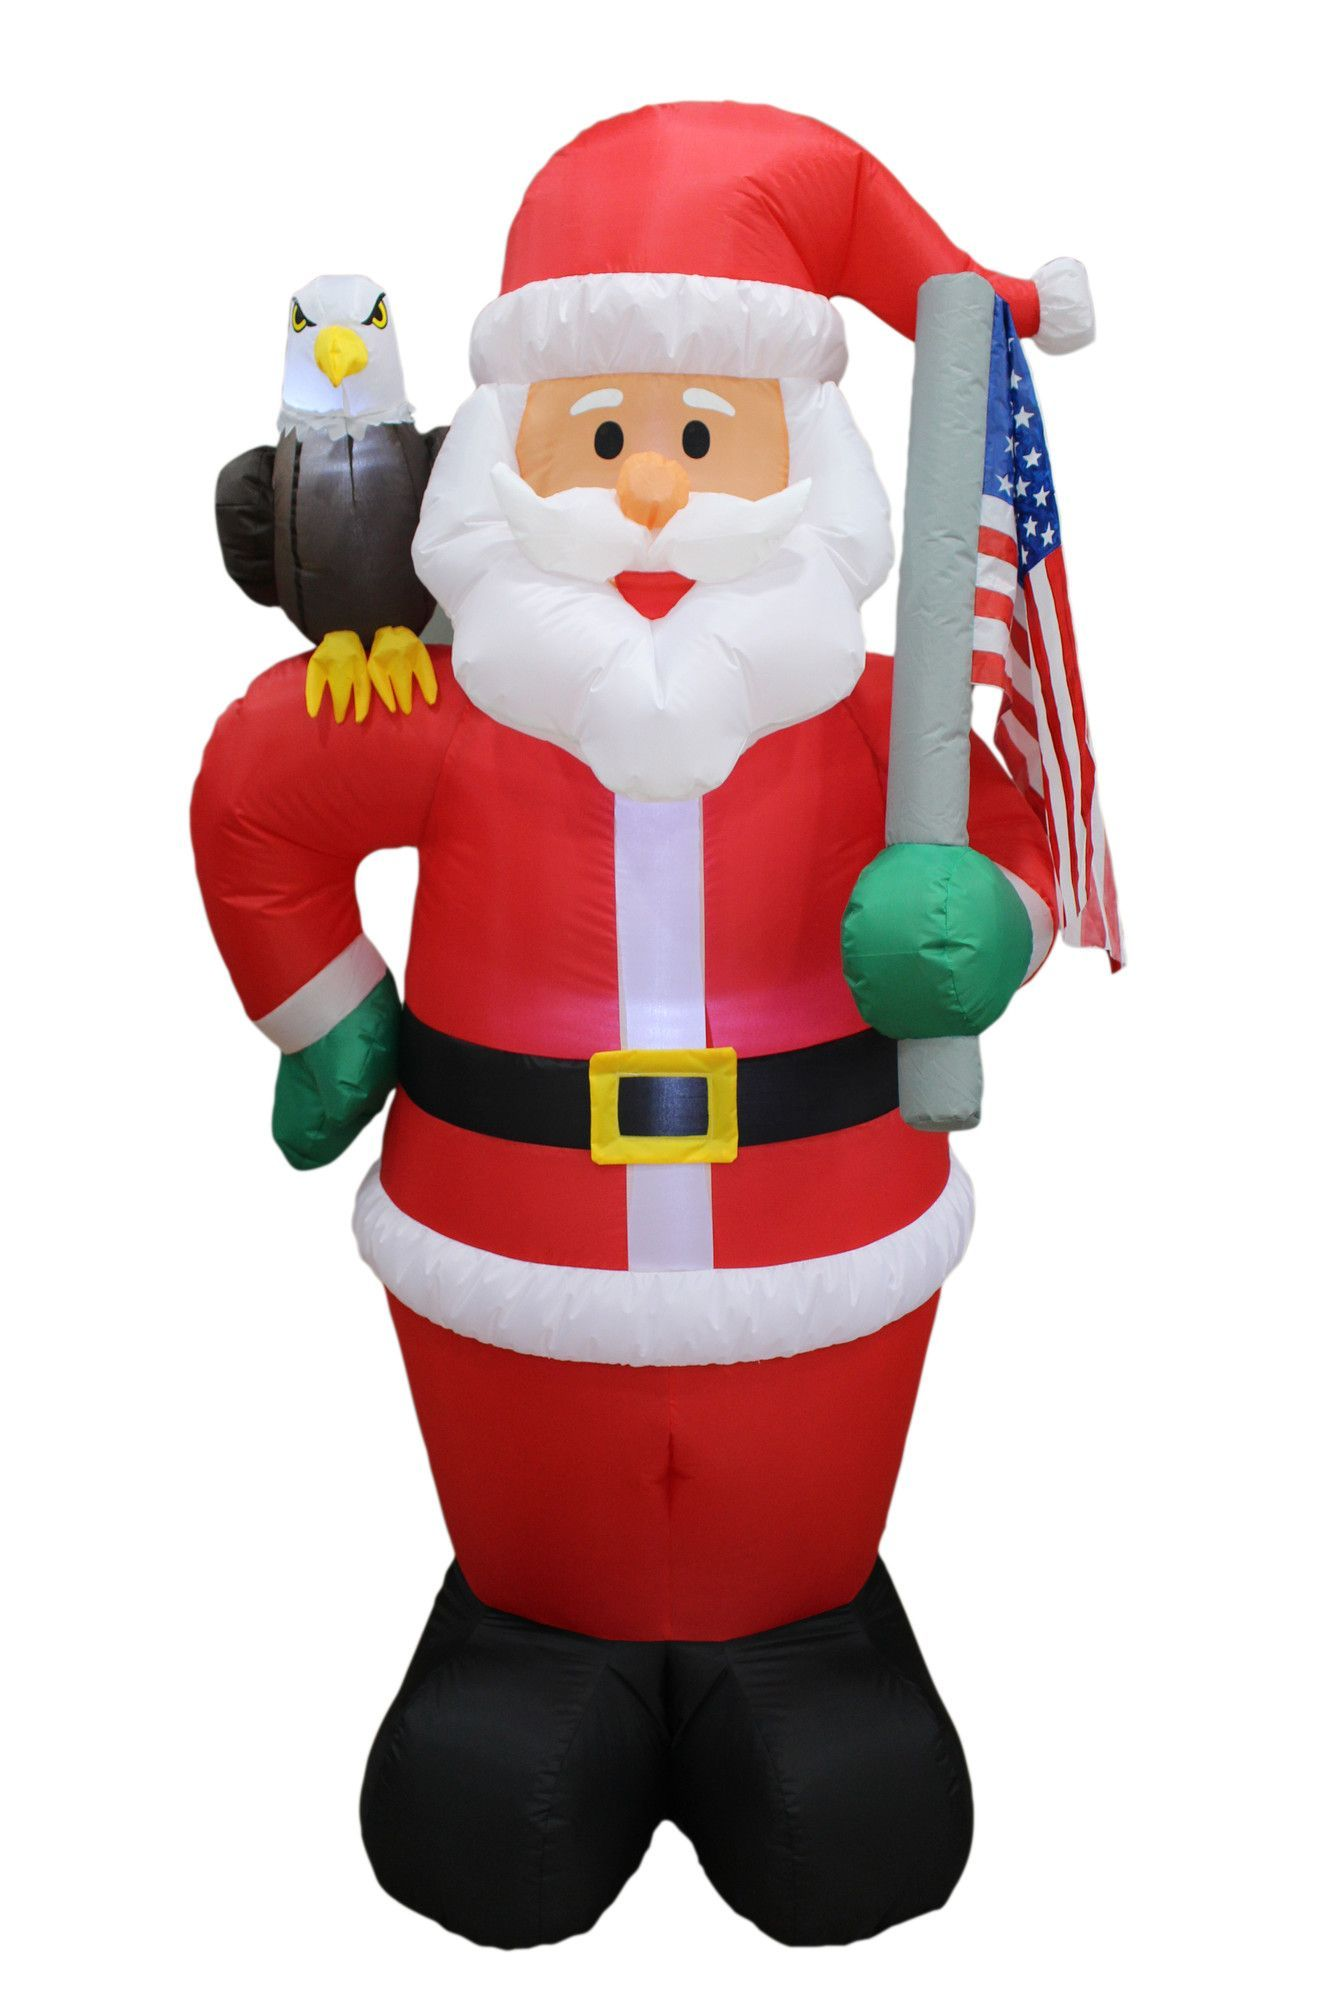 10 piece tall christmas inflatable patriotic santa claus with eagle and american flag set - Outdoor Christmas Inflatable Yard Decorations